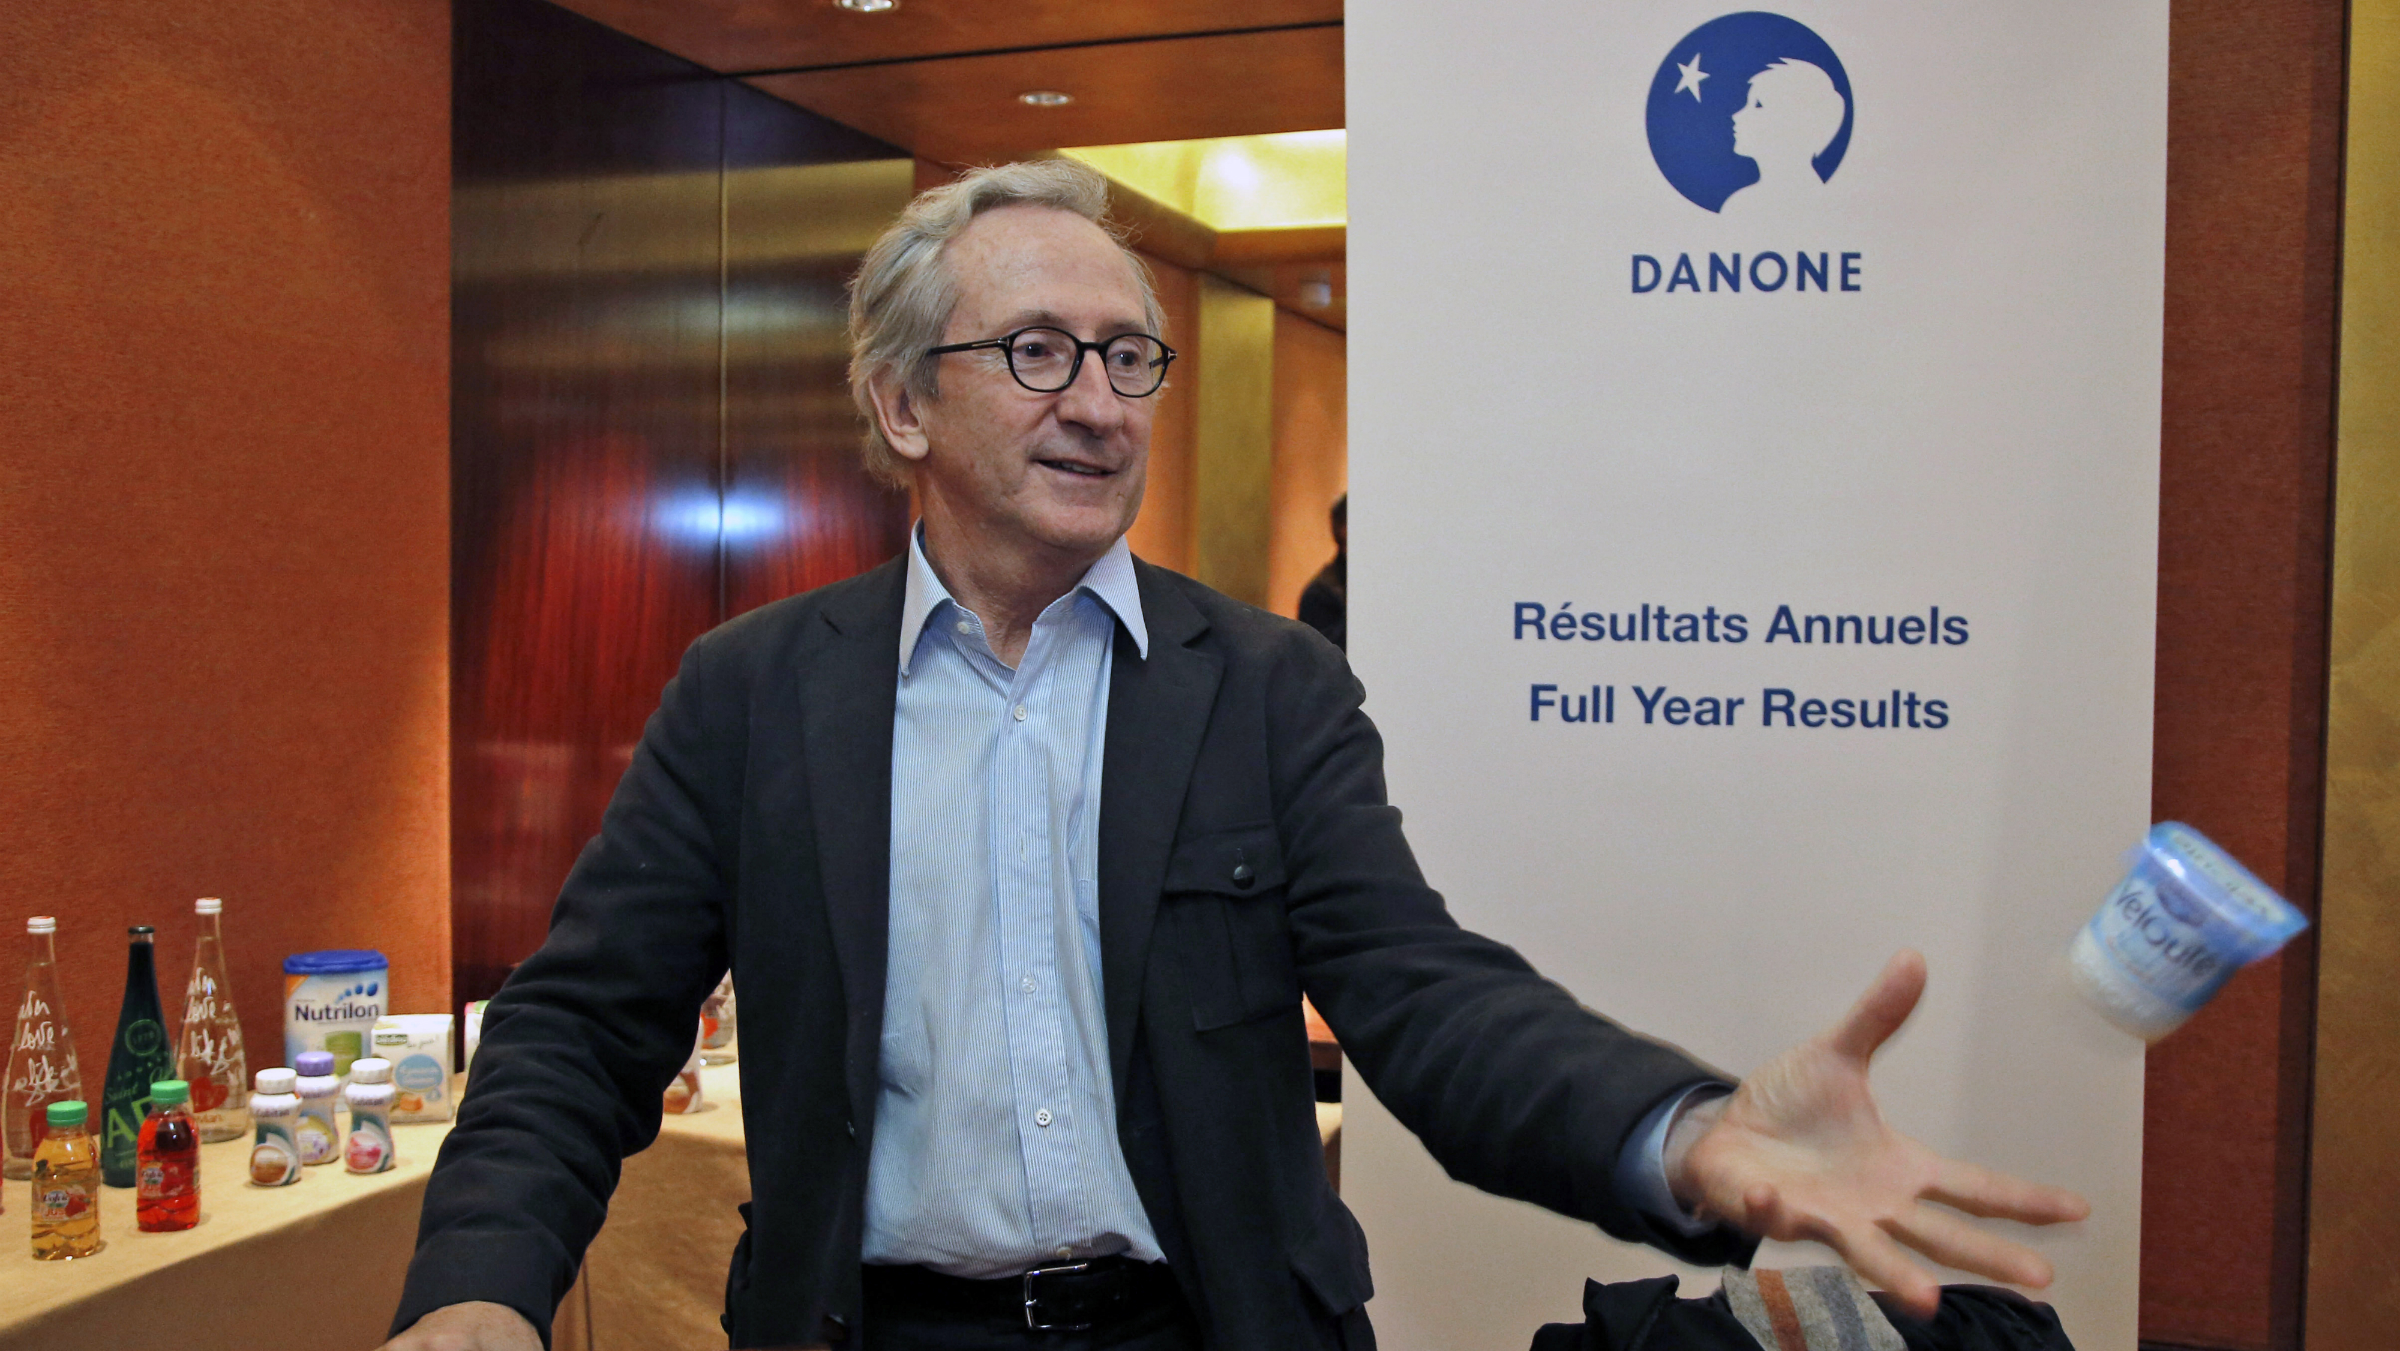 Danone chief executive Franck Riboud poses prior to delivering a speech for the 2012 year financial results conference in Paris, Tuesday, Feb. 19, 2013. French food and drink company Danone says revenues grew 5.4 percent in 2012 but are coming under increasing pressure in economically-struggling Europe, where the company says it will cut 900 jobs across 26 countries. (AP Photo/Francois Mori